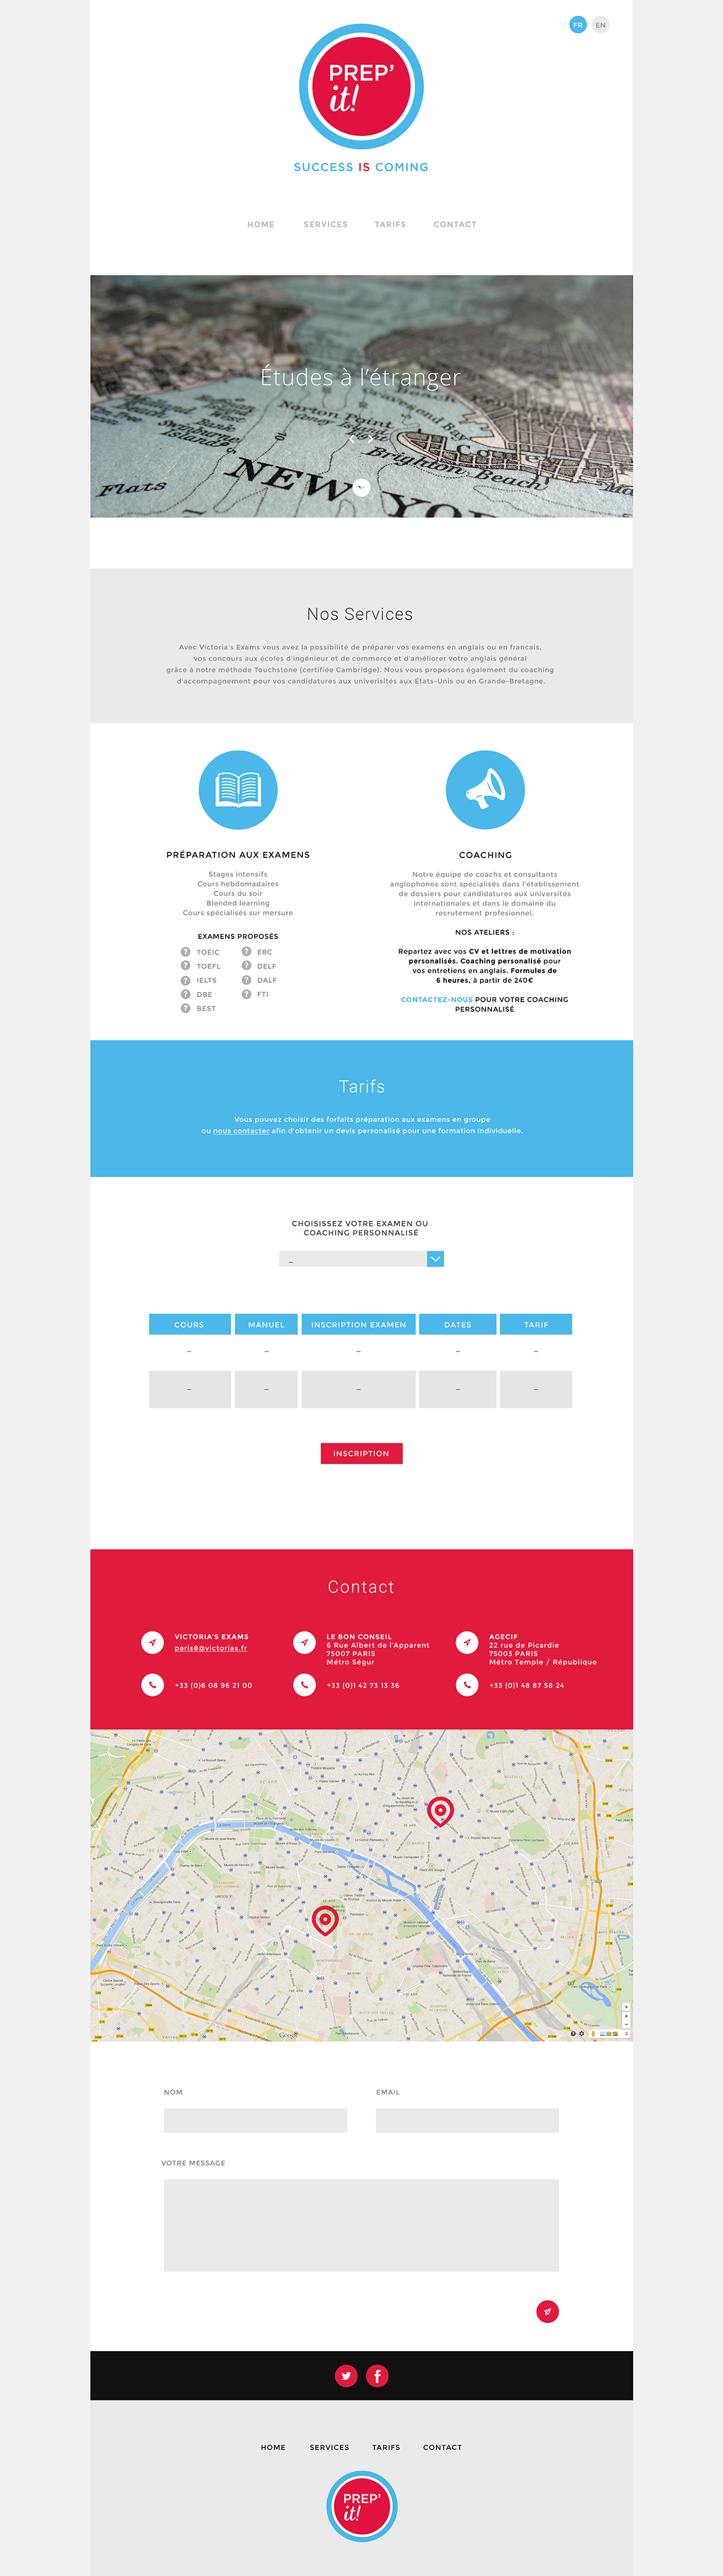 prep_it_website_mockup_02